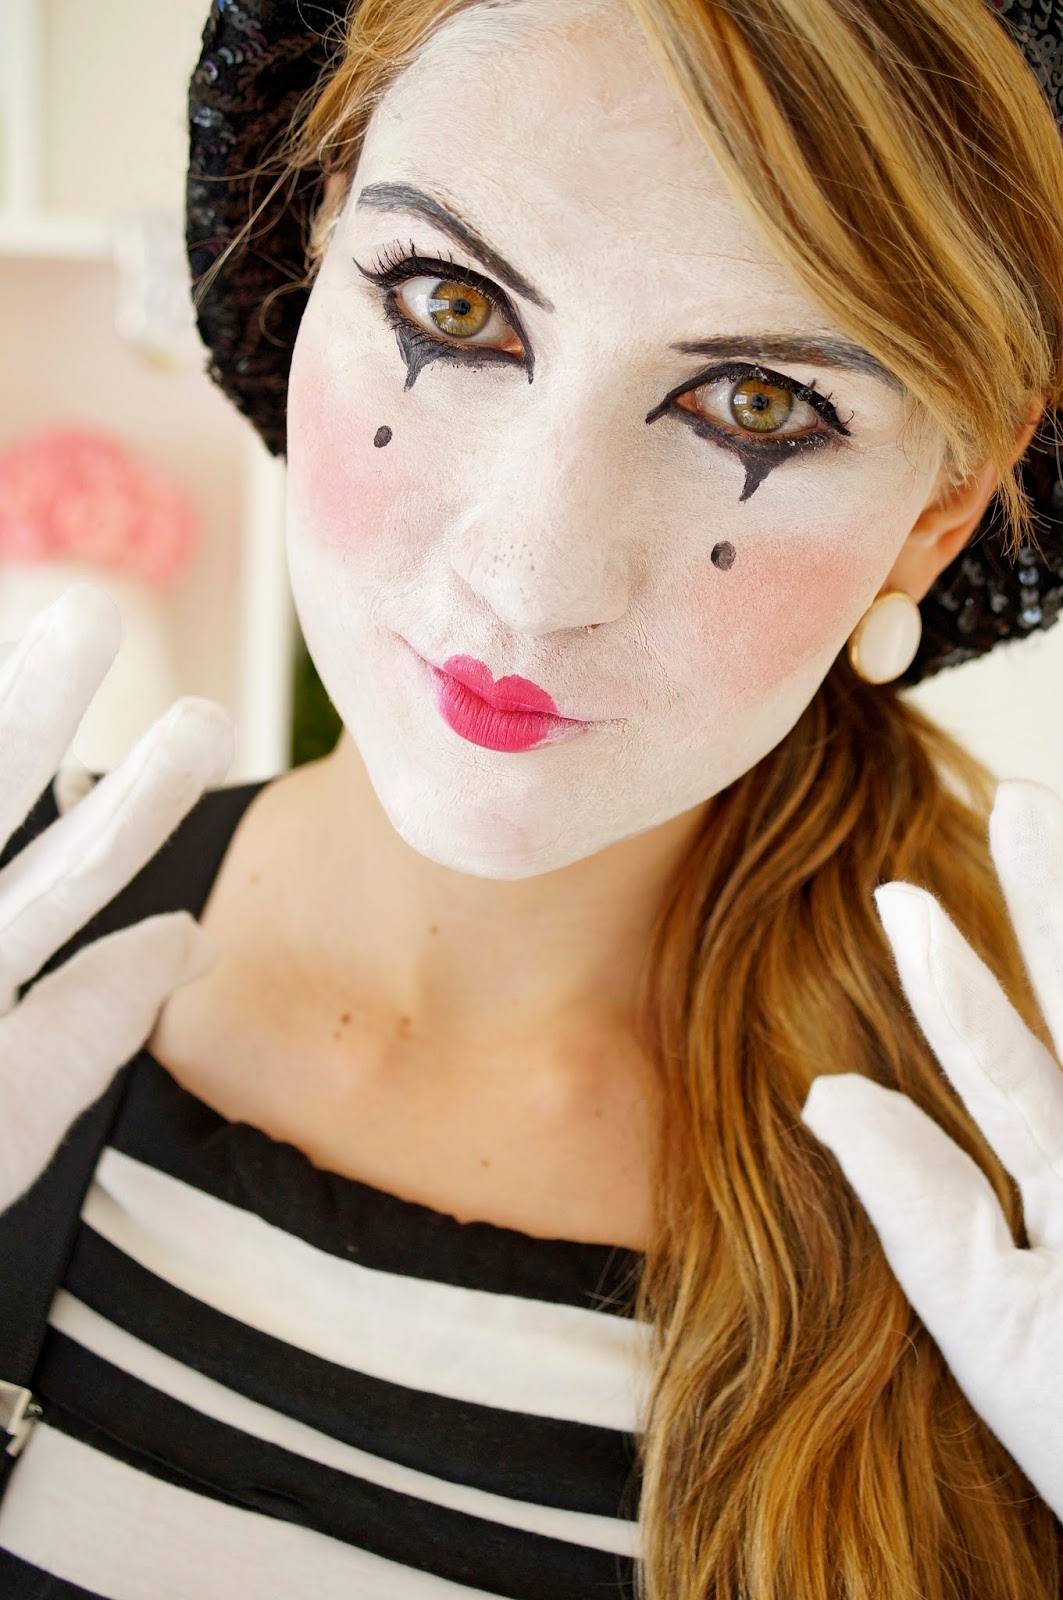 See how easy that was?! Hope you are all enjoying these simple DIY Halloween costume ideas... stay tuned to see more!  sc 1 st  The Joy of Fashion & The Joy of Fashion: Halloween: Last Minute Homemade Mime Costume